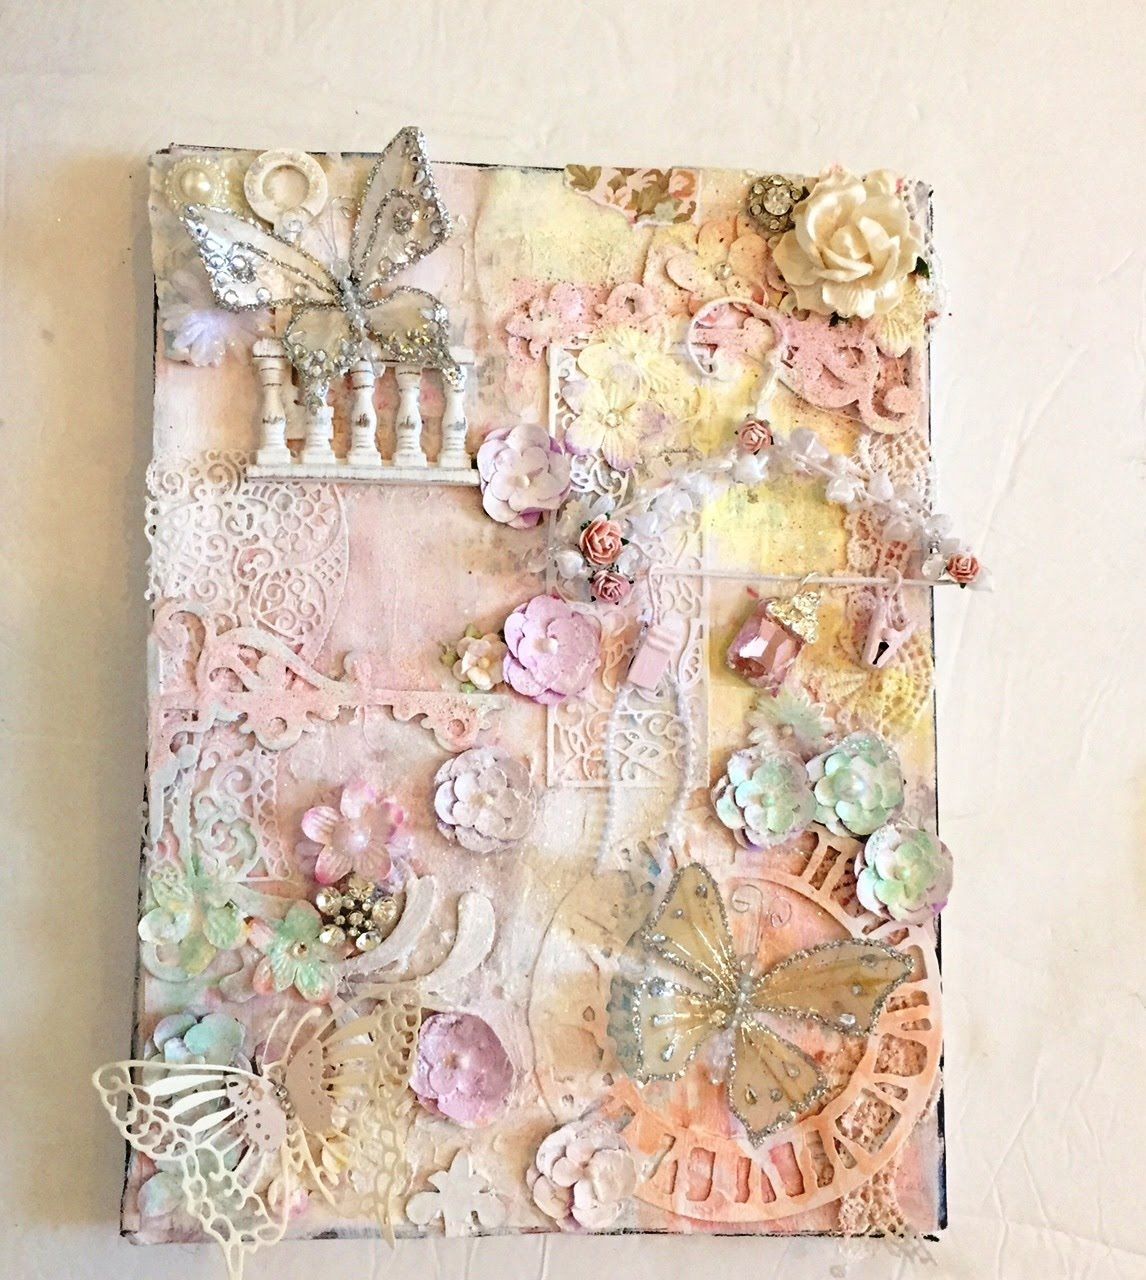 Shabby chic crafts to make - Shabby Chic Crafts To Make And Sell Google Search